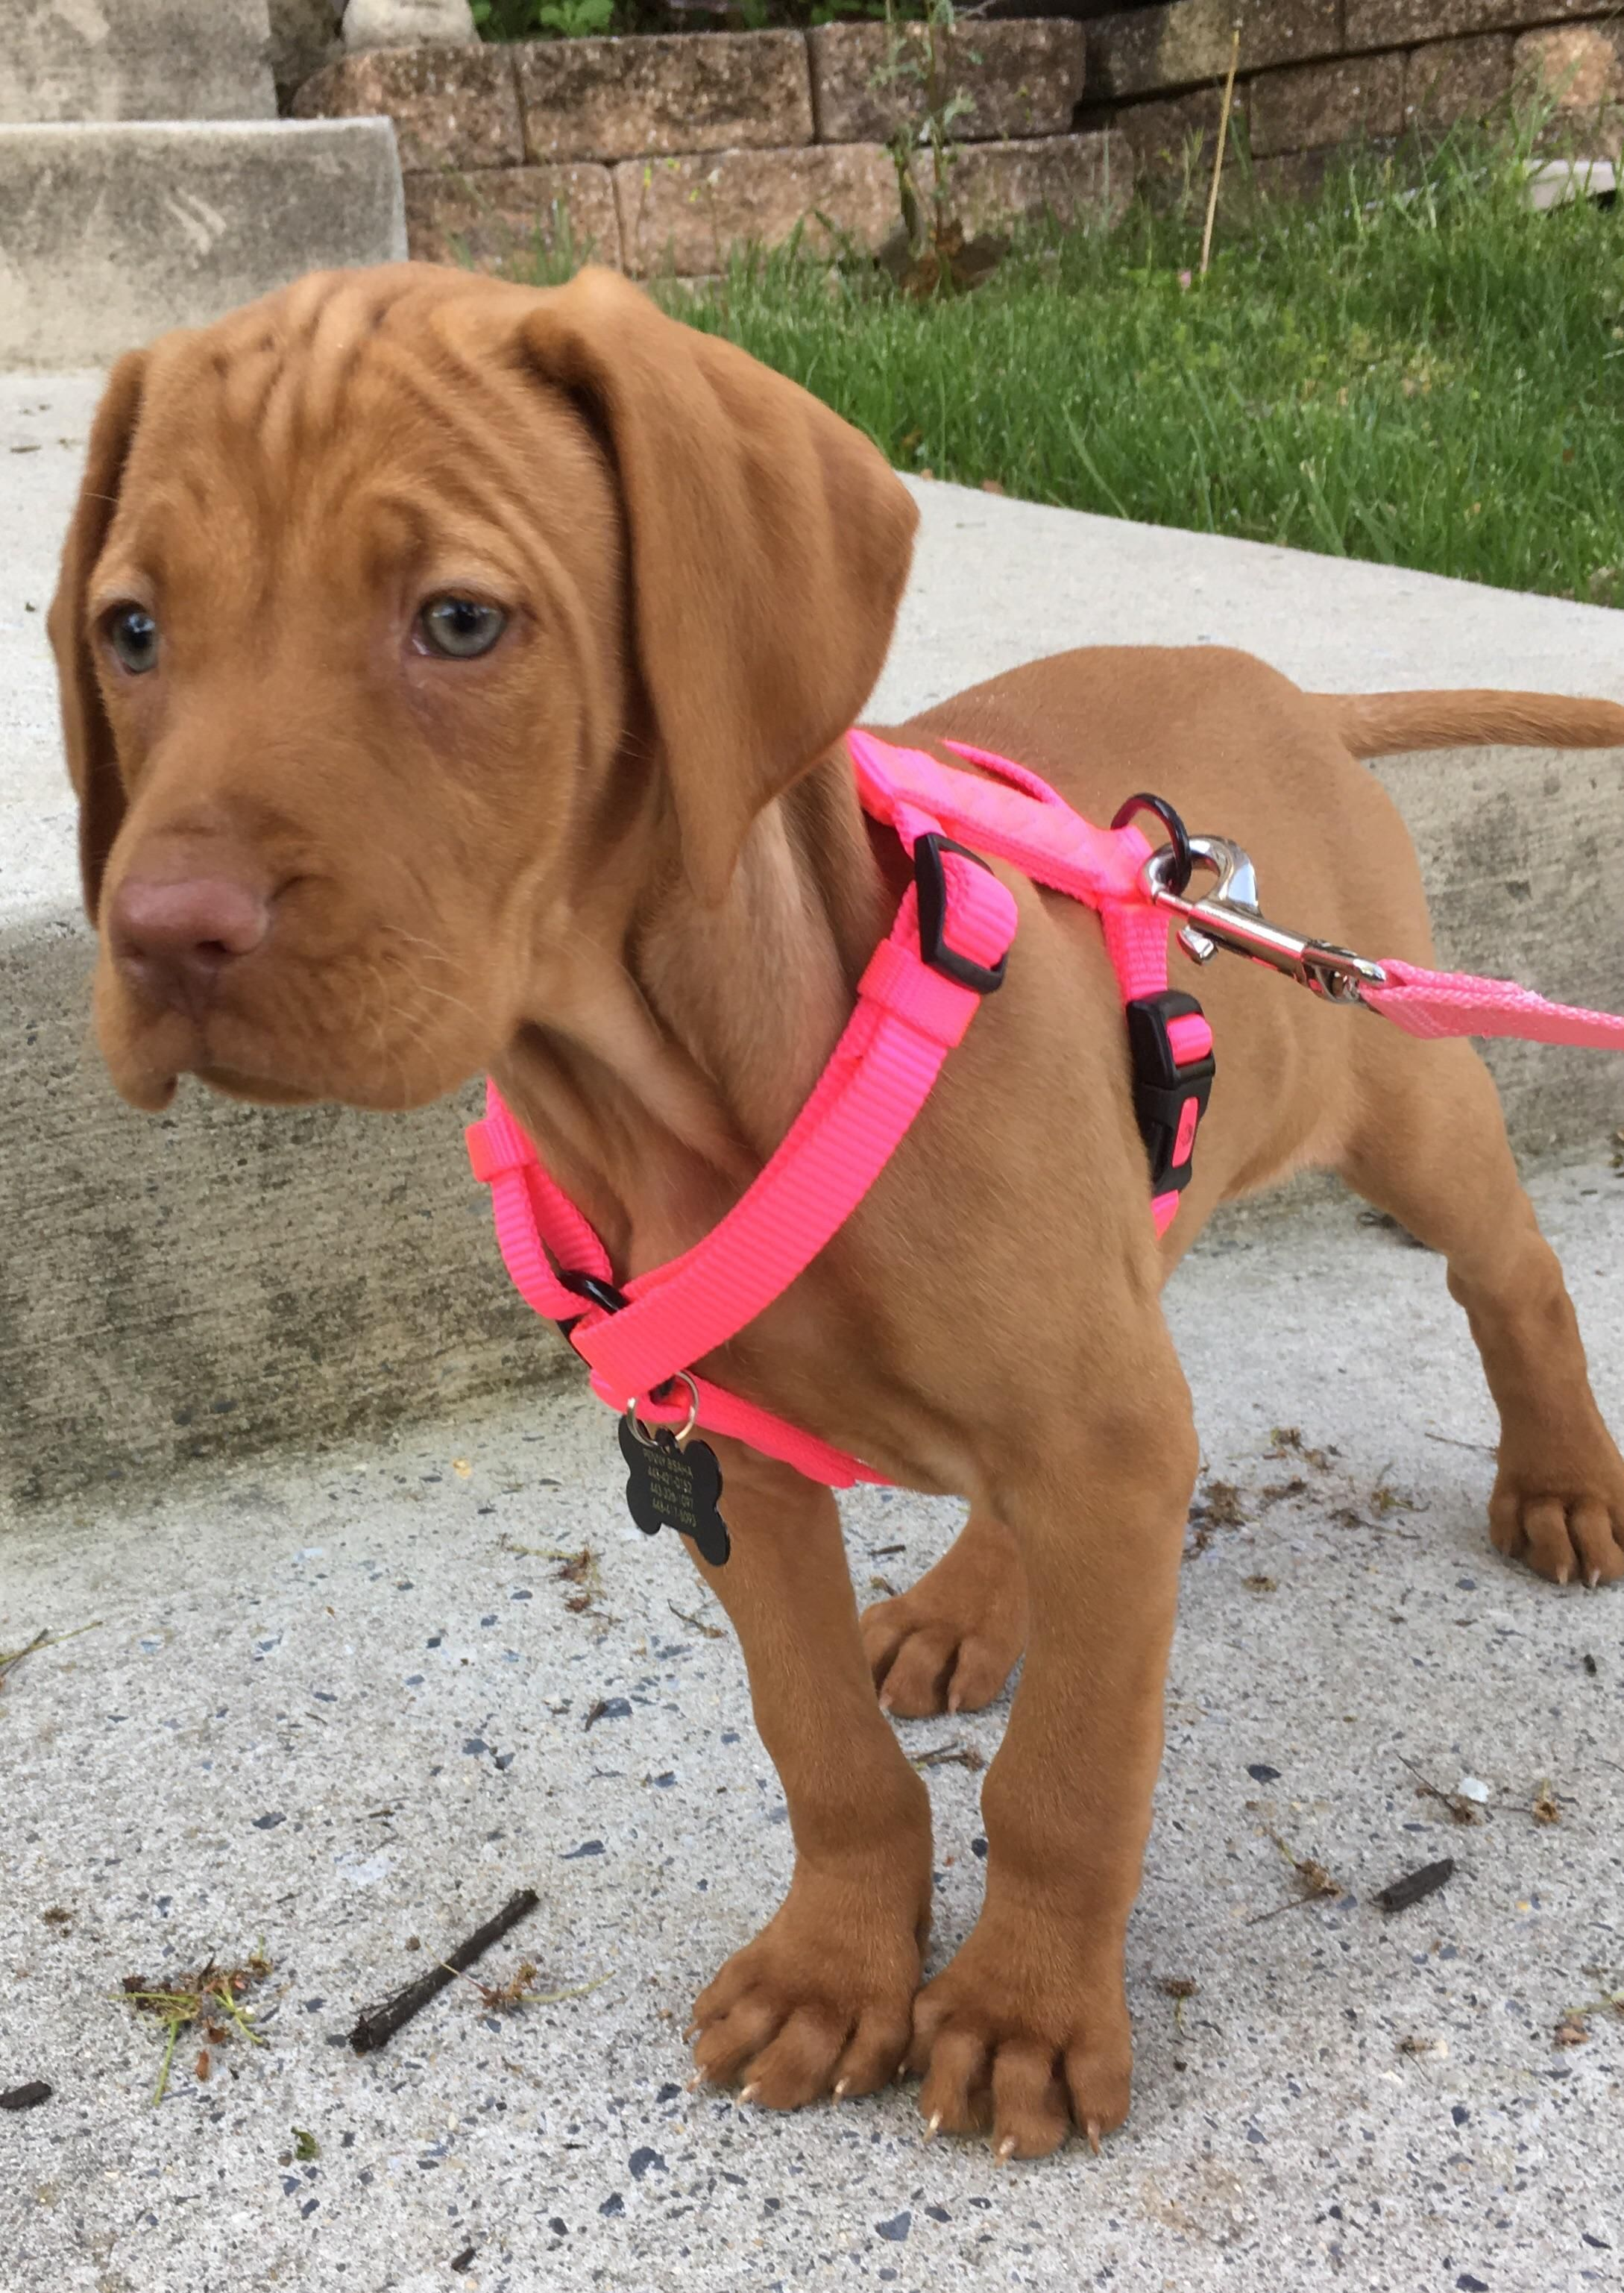 This Is Penny Our 9 Week Old Vizsla Puppy Https Ift Tt 2htiwq3